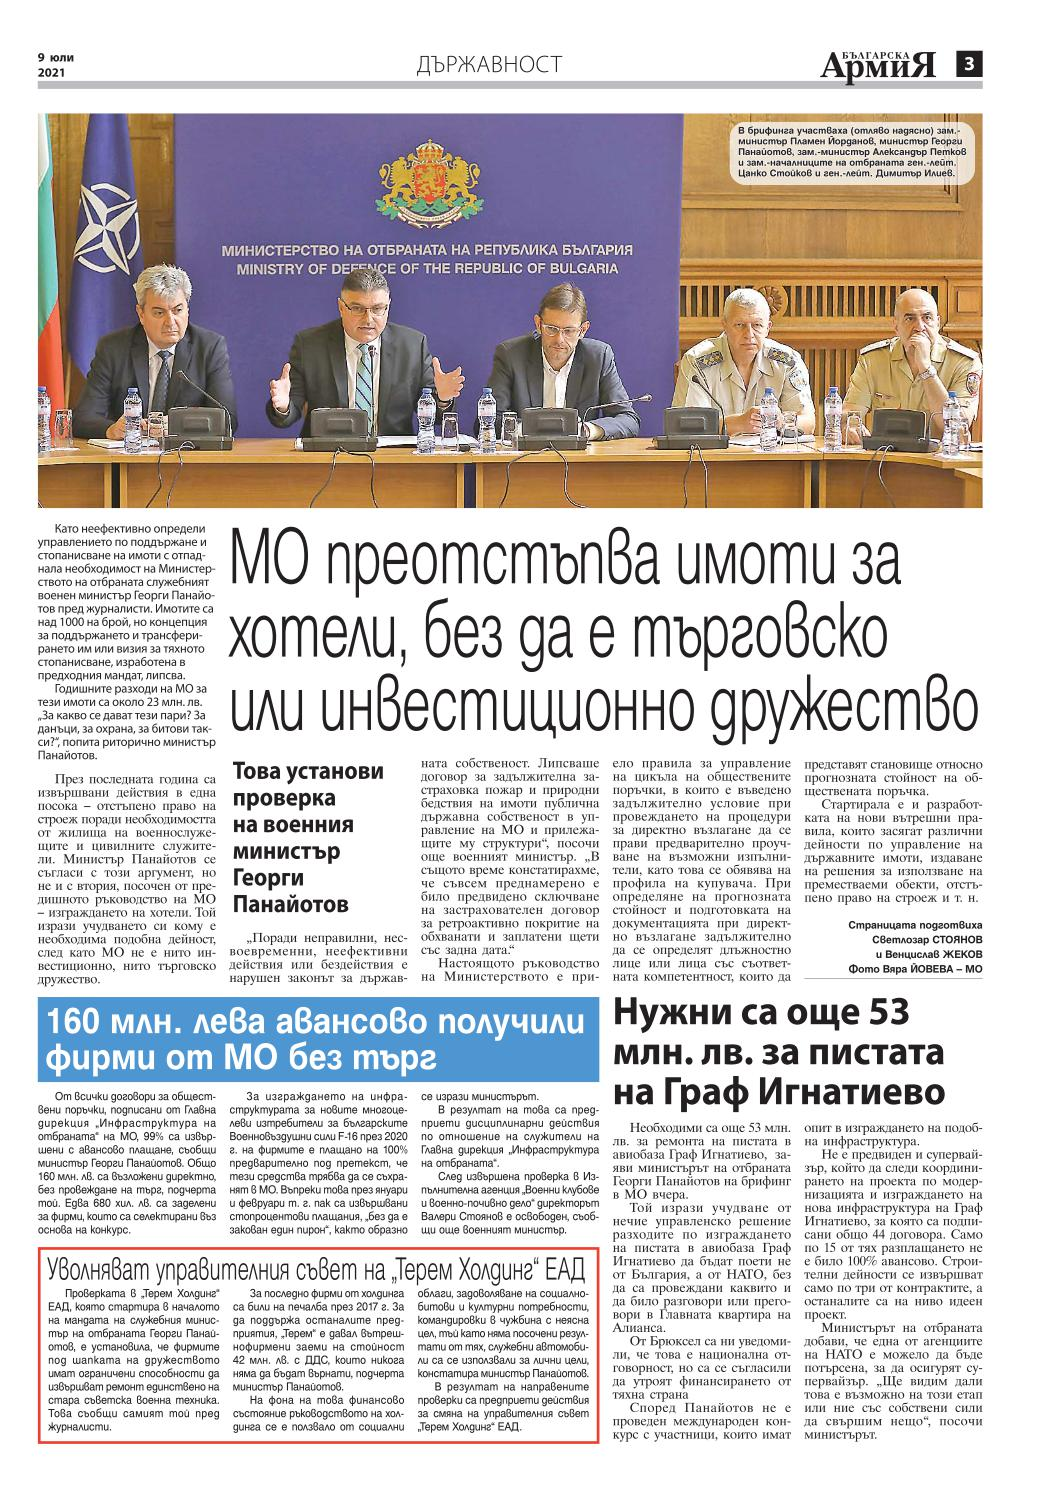 https://armymedia.bg/wp-content/uploads/2021/07/03.page1_-1.jpg